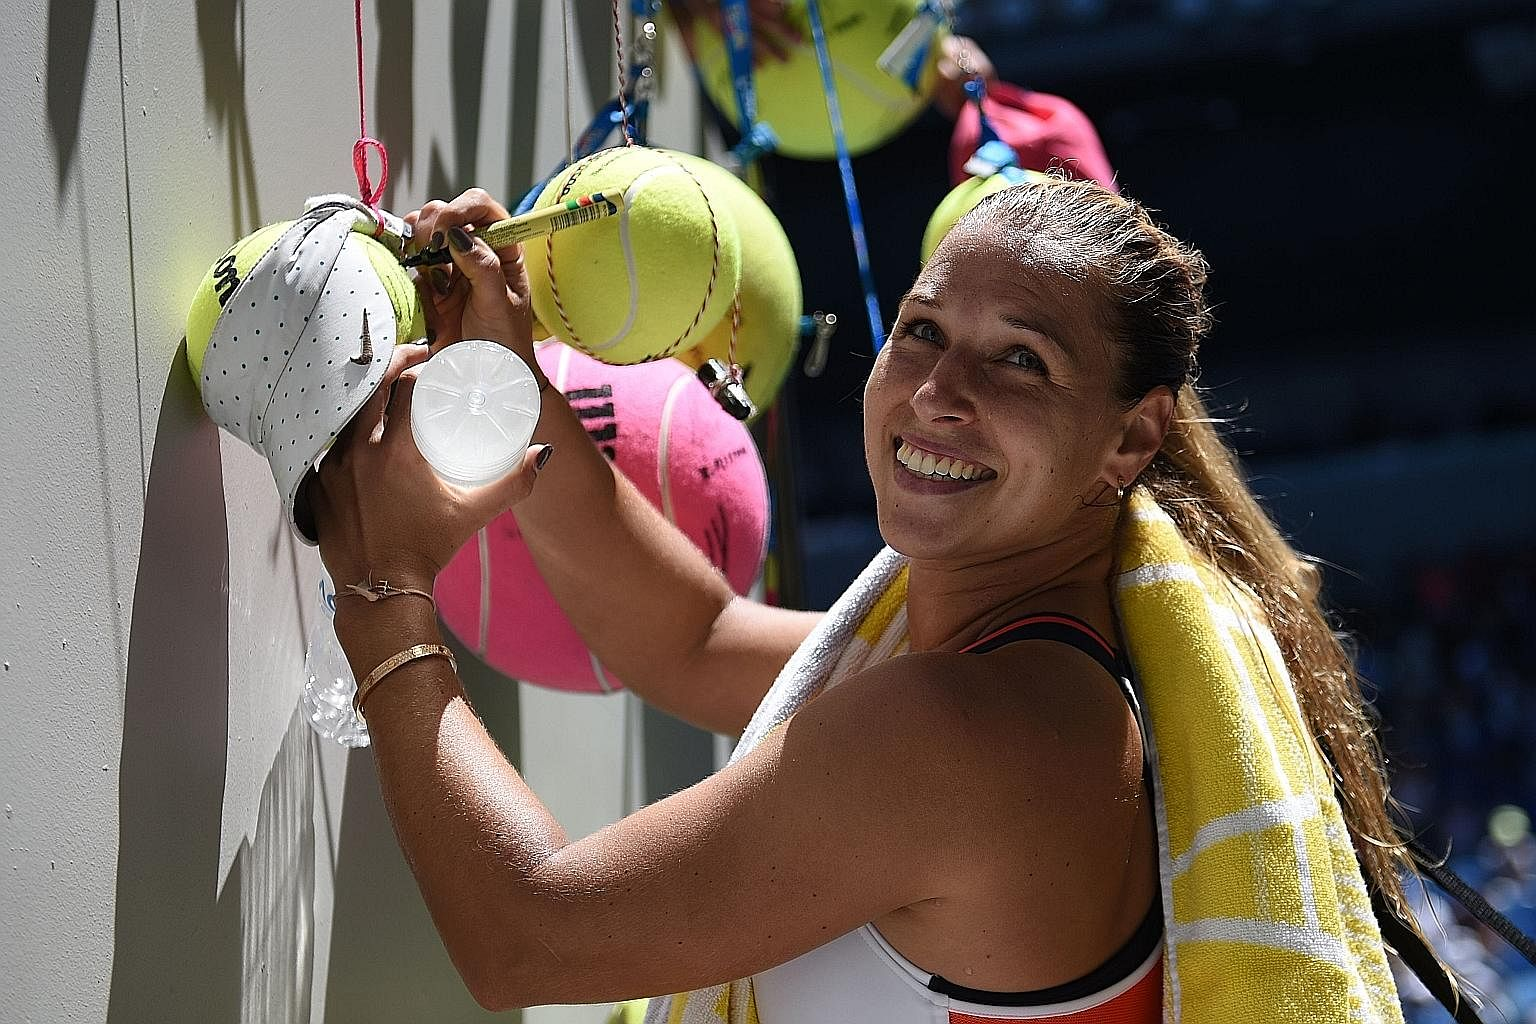 Slovakia's Dominika Cibulkova signing autographs at the Australian Open. The 27-year-old lost in the third round at Melbourne Park and is learning how to deal with the pressure of being the world No. 5.